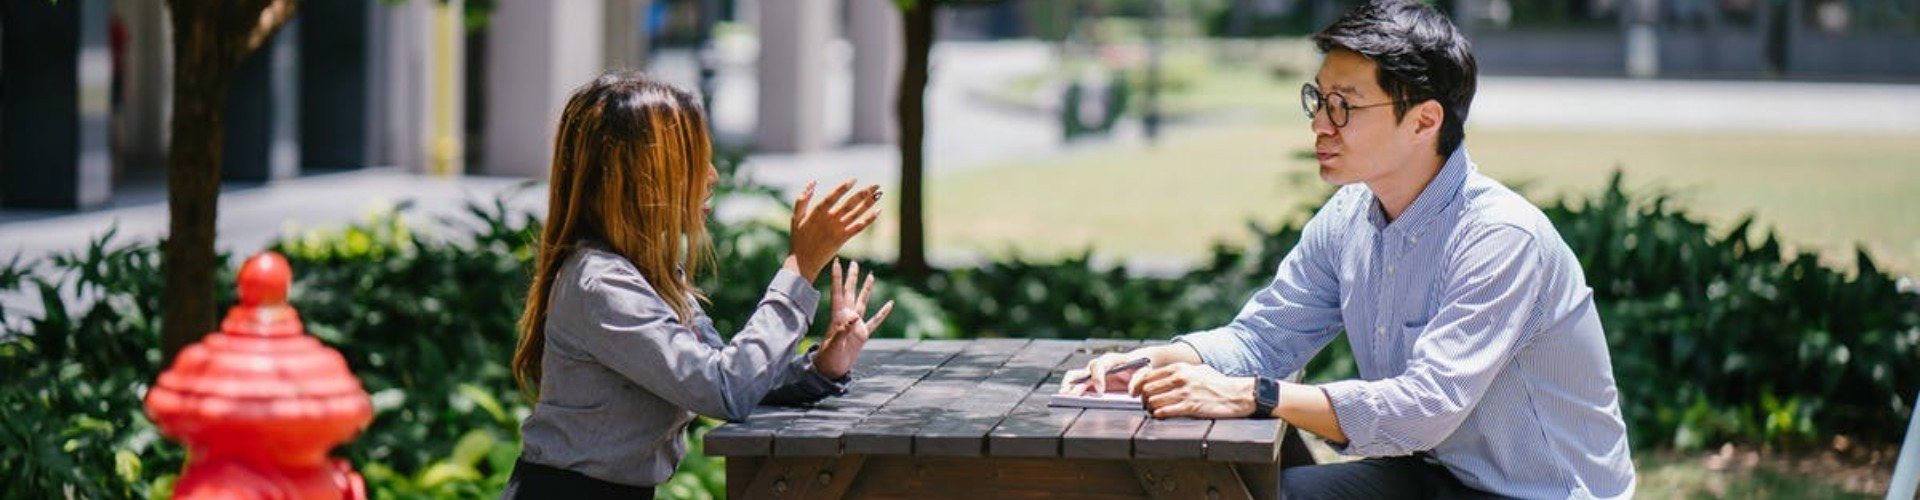 How to Give Productive, Respectful Peer-to-Peer Feedback